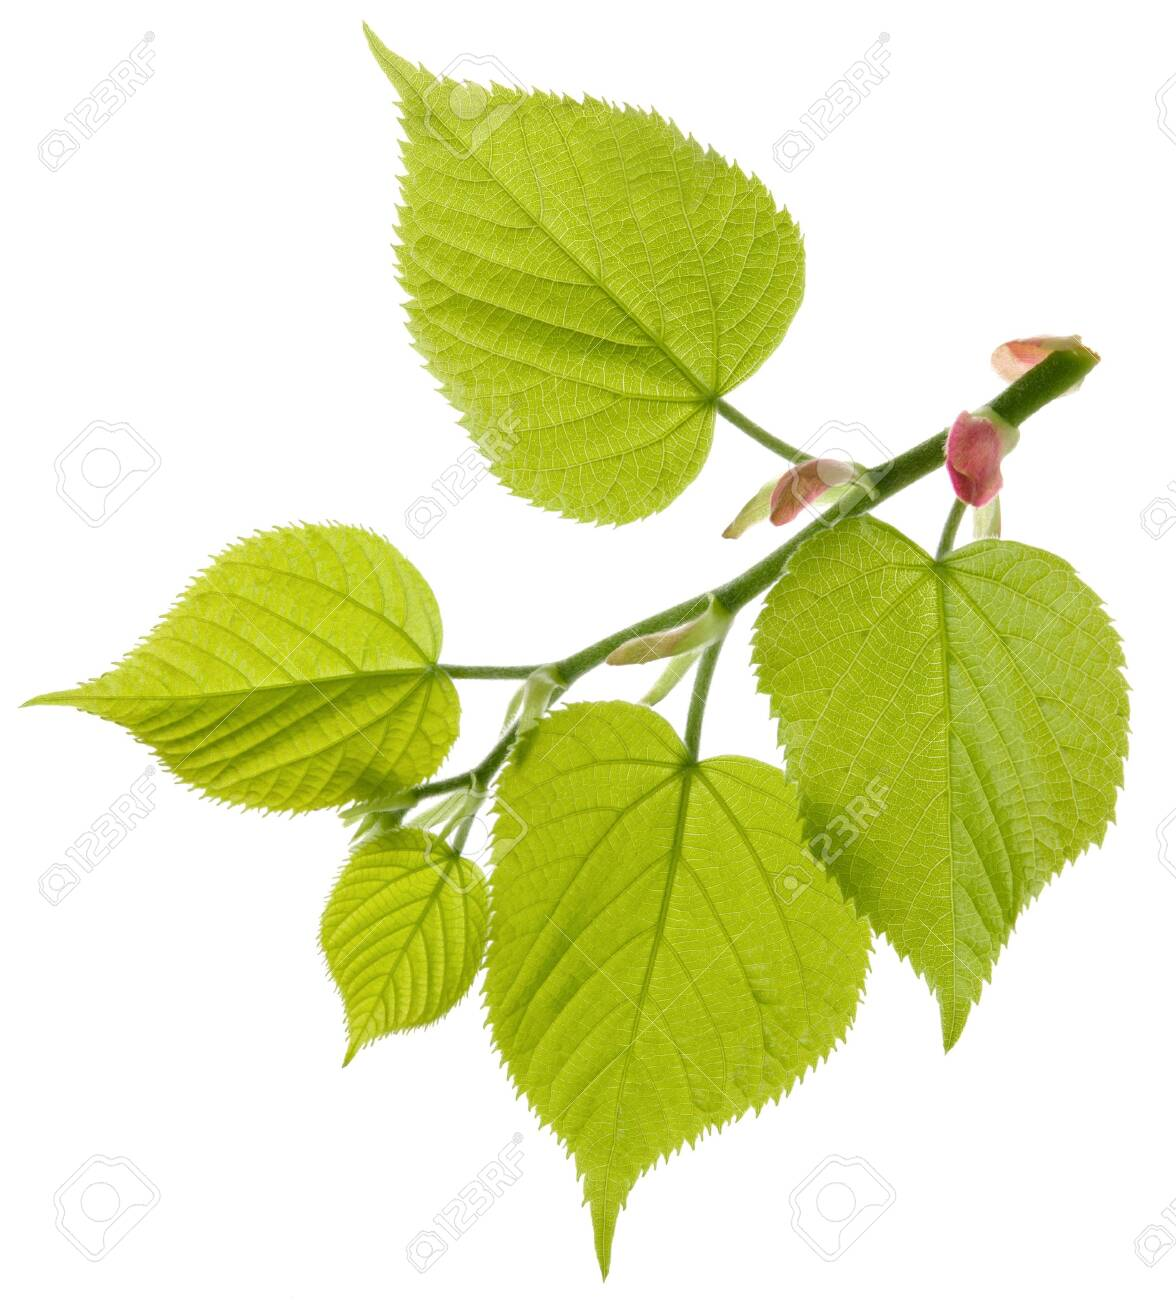 Linden tree fresh branch with green leaves isolated on white background - 135264264